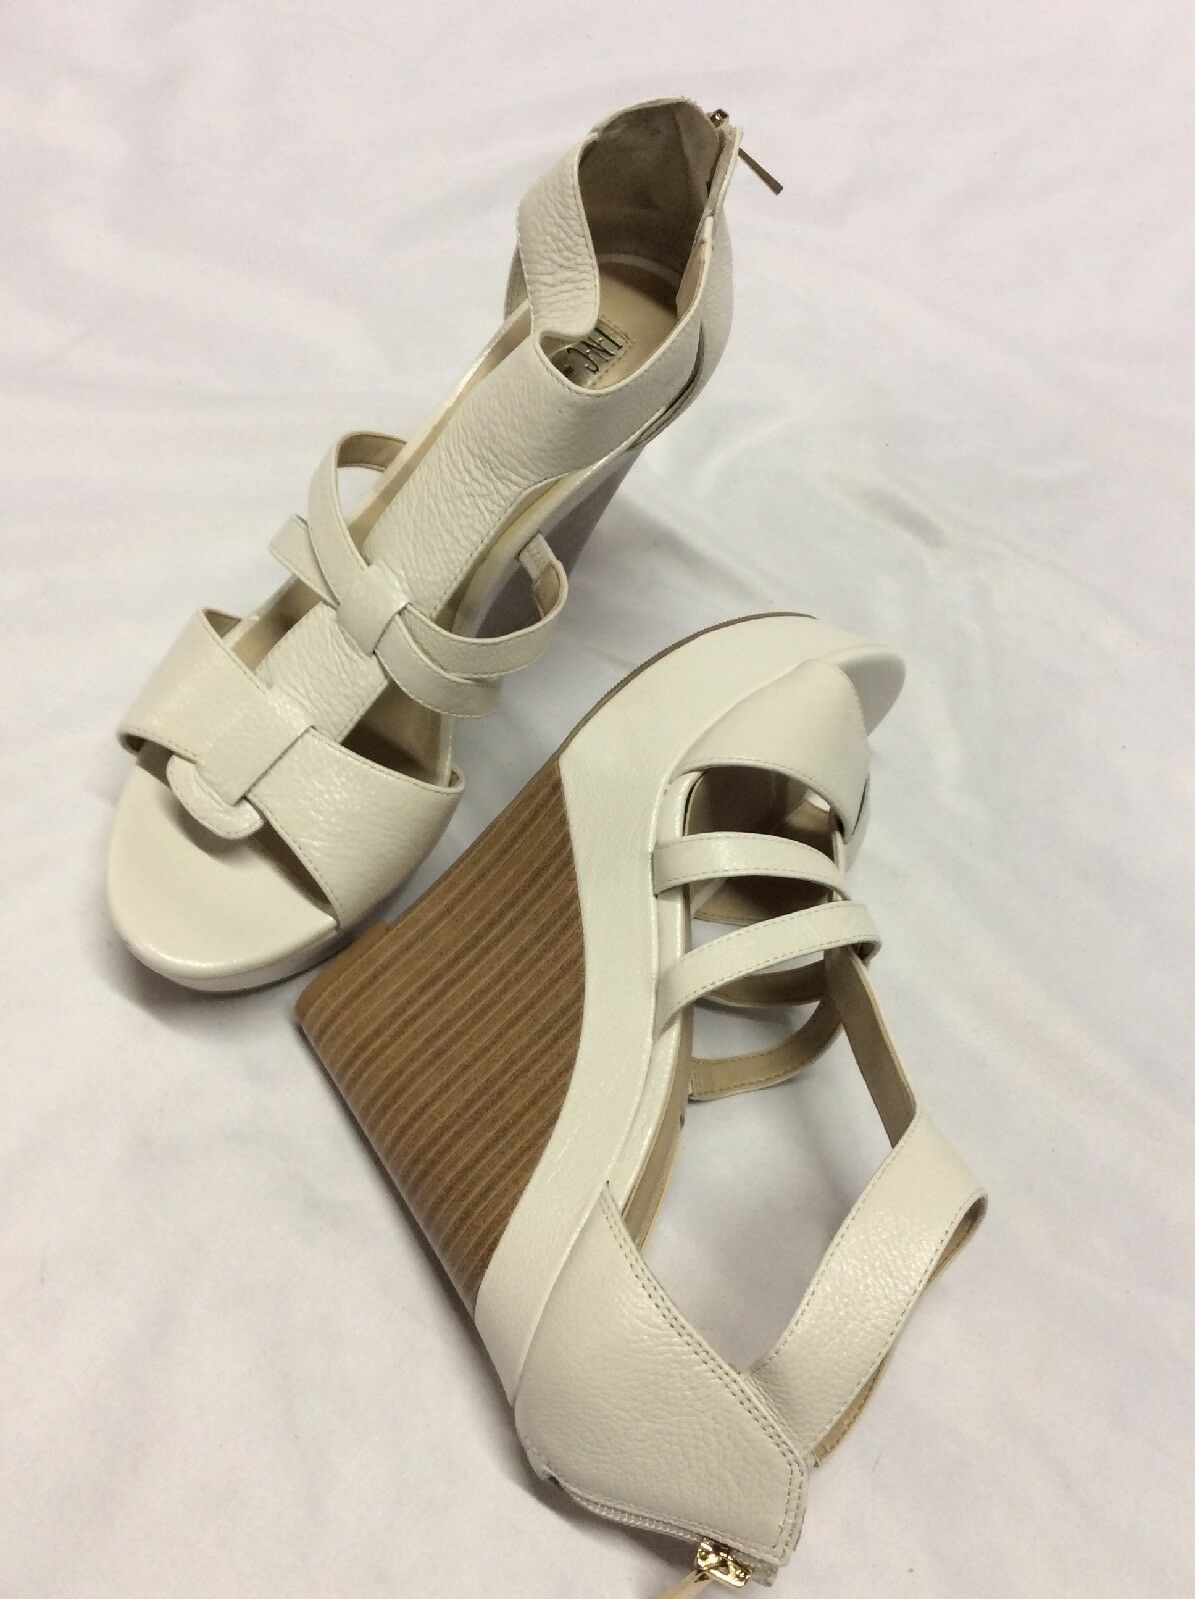 INC International Concepts CRESSIDA Damens's Wedge Sandales,Bridal Cream Größe10 Größe10 Größe10 M 6c02fe